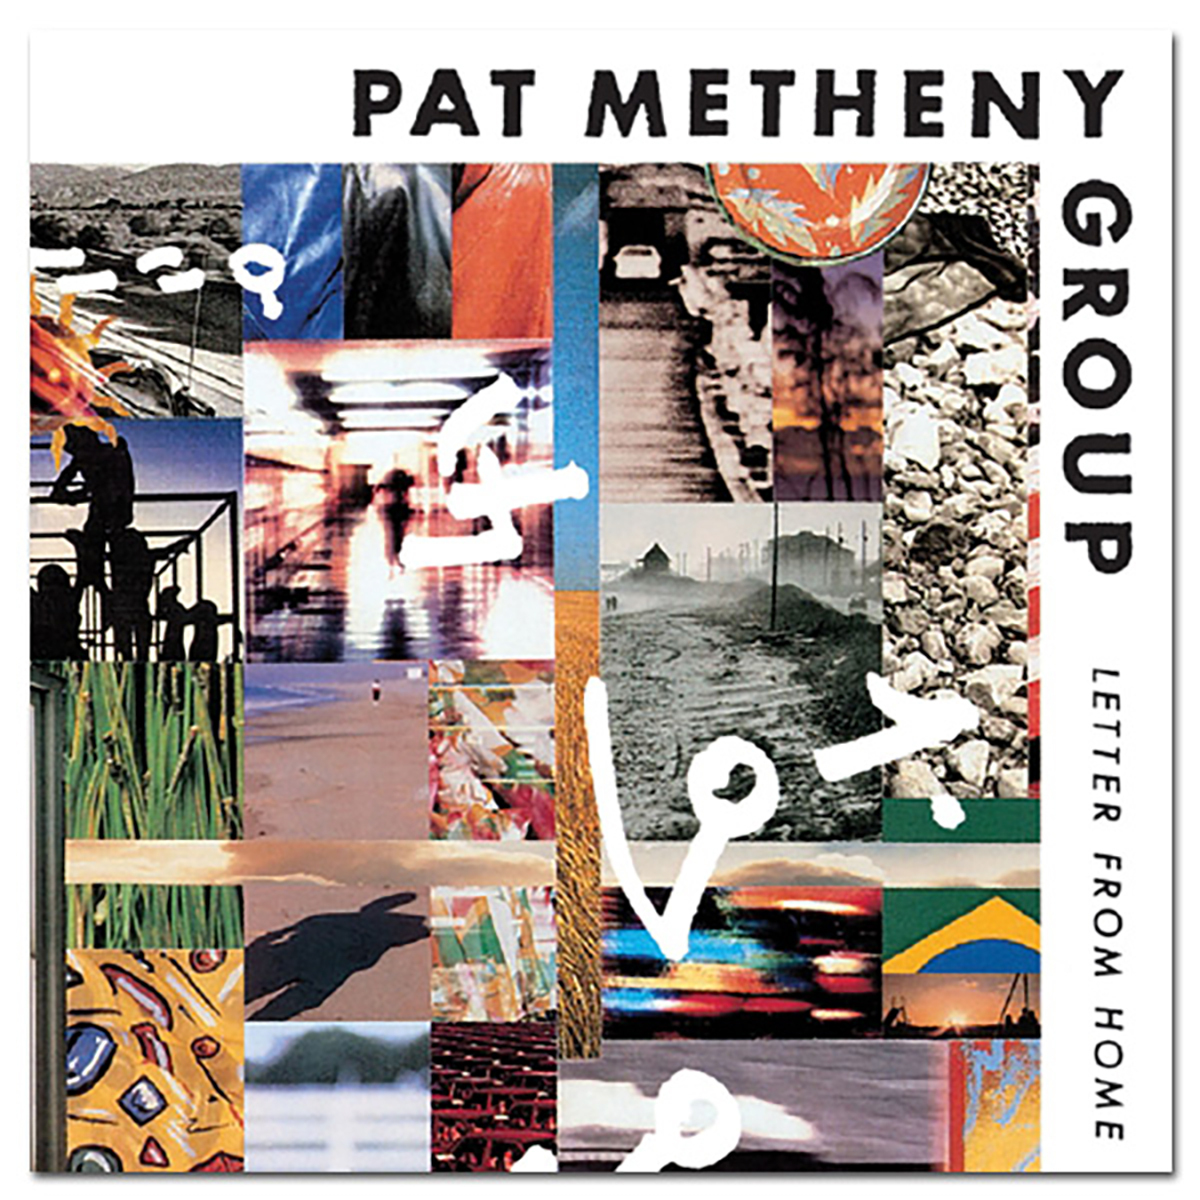 Pat Metheny - Letter From Home - Digital Download